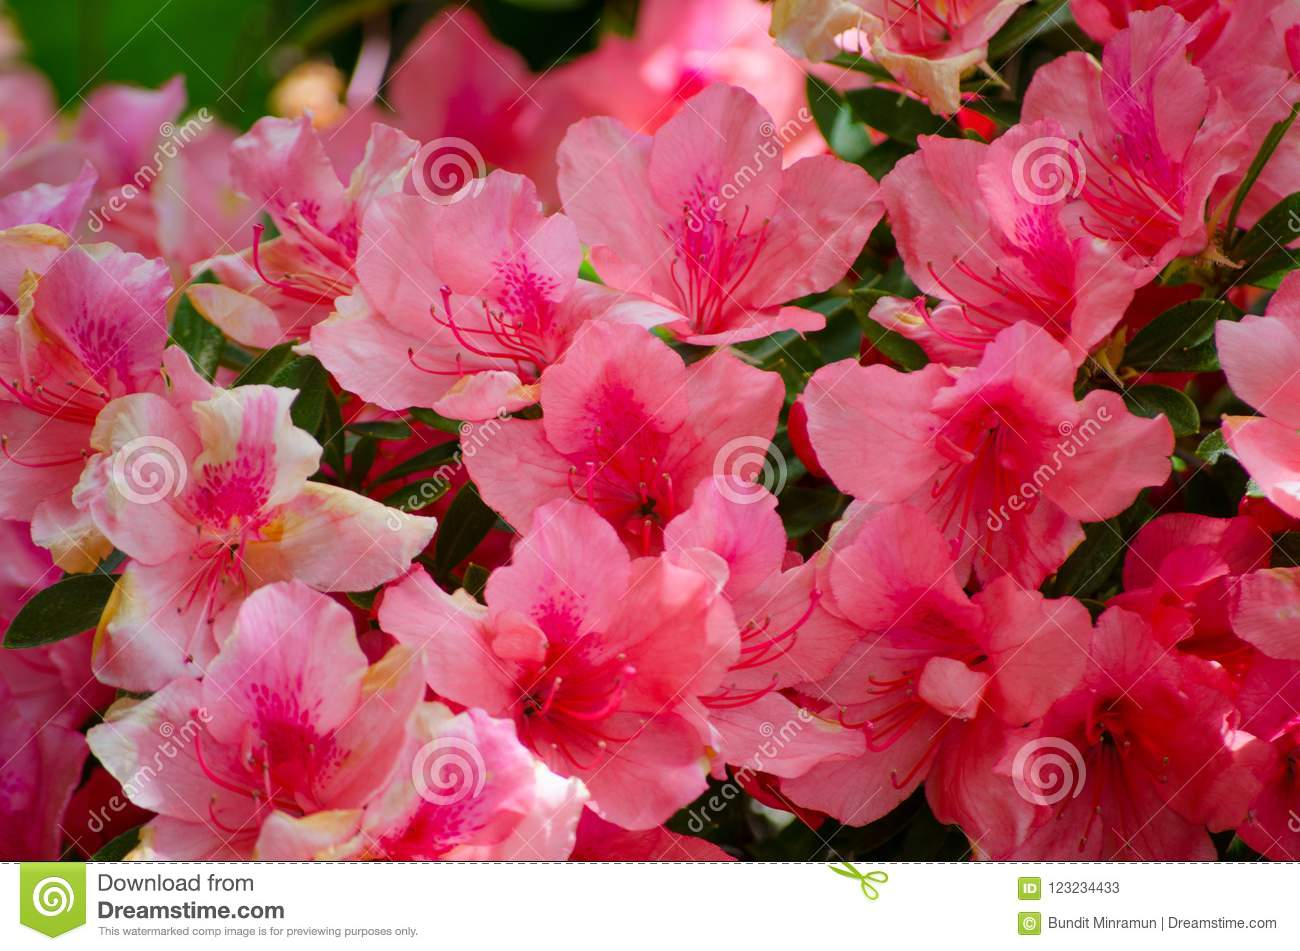 Beautiful White Red Pink Azalea Flowers In A Spring Season At A